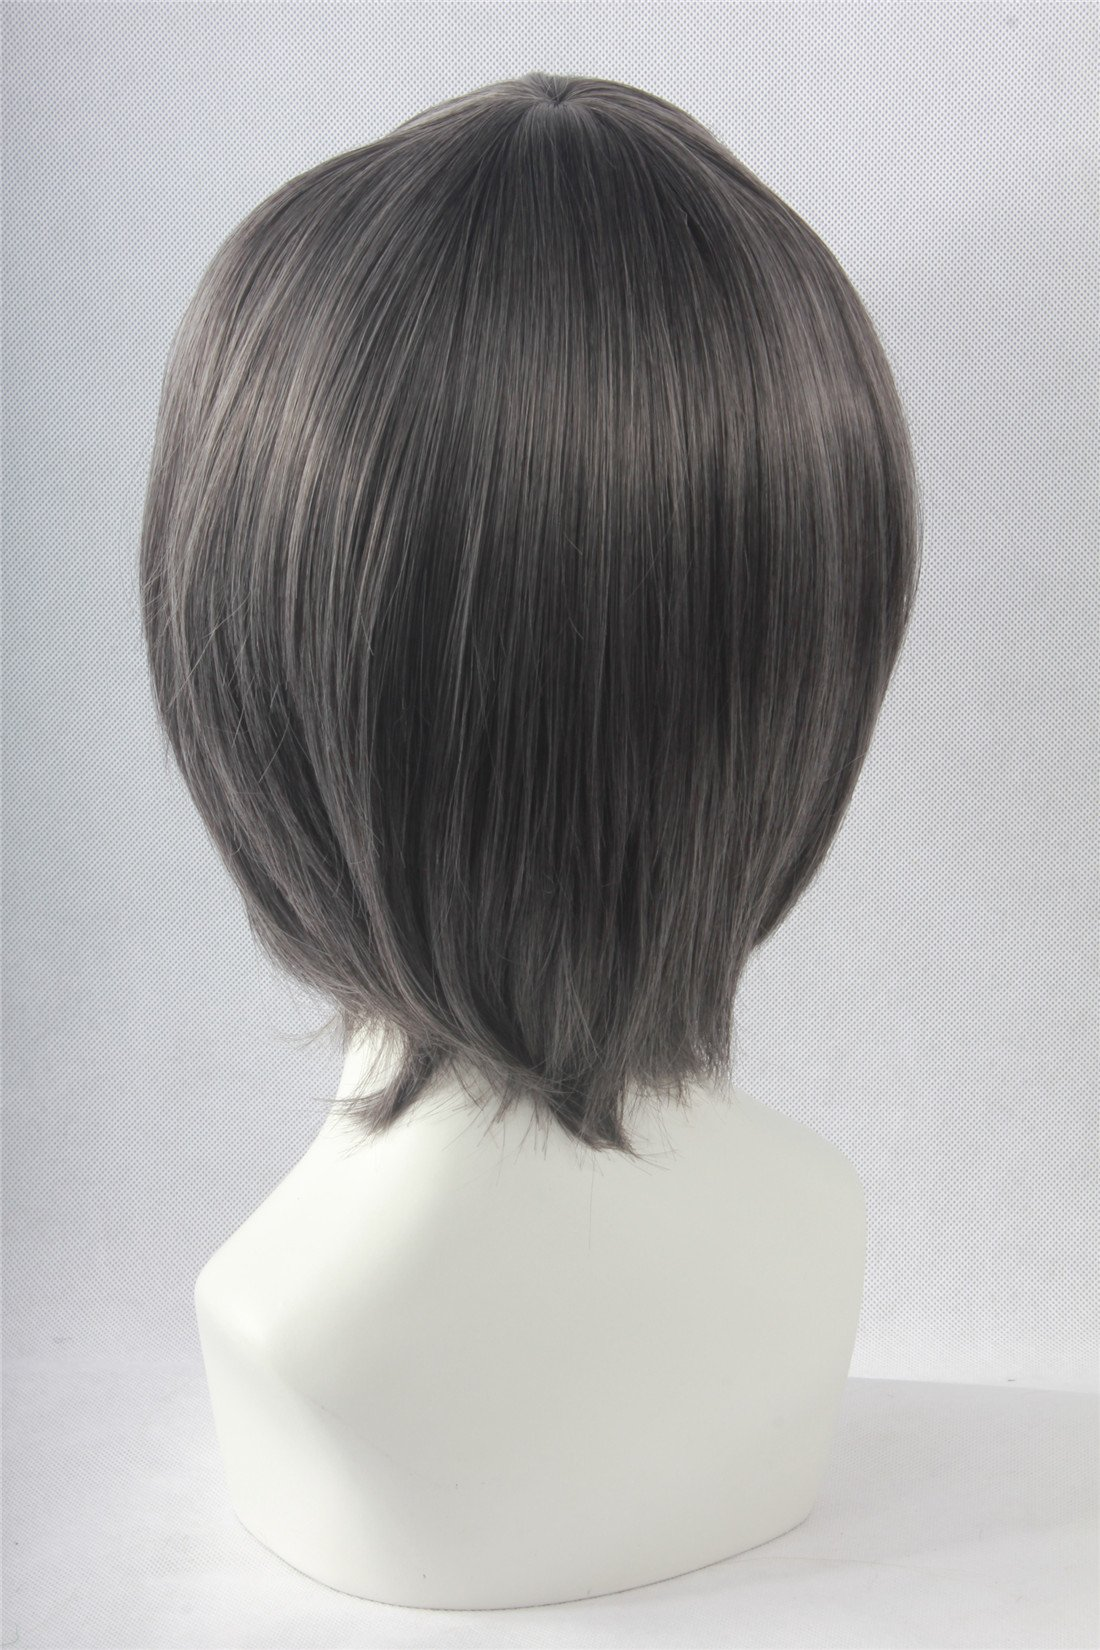 Icoser Anime Cosplay Party Wigs for Halloween Short Green Synthetic Hair 12'' 190g (Gray) by i-coser (Image #3)